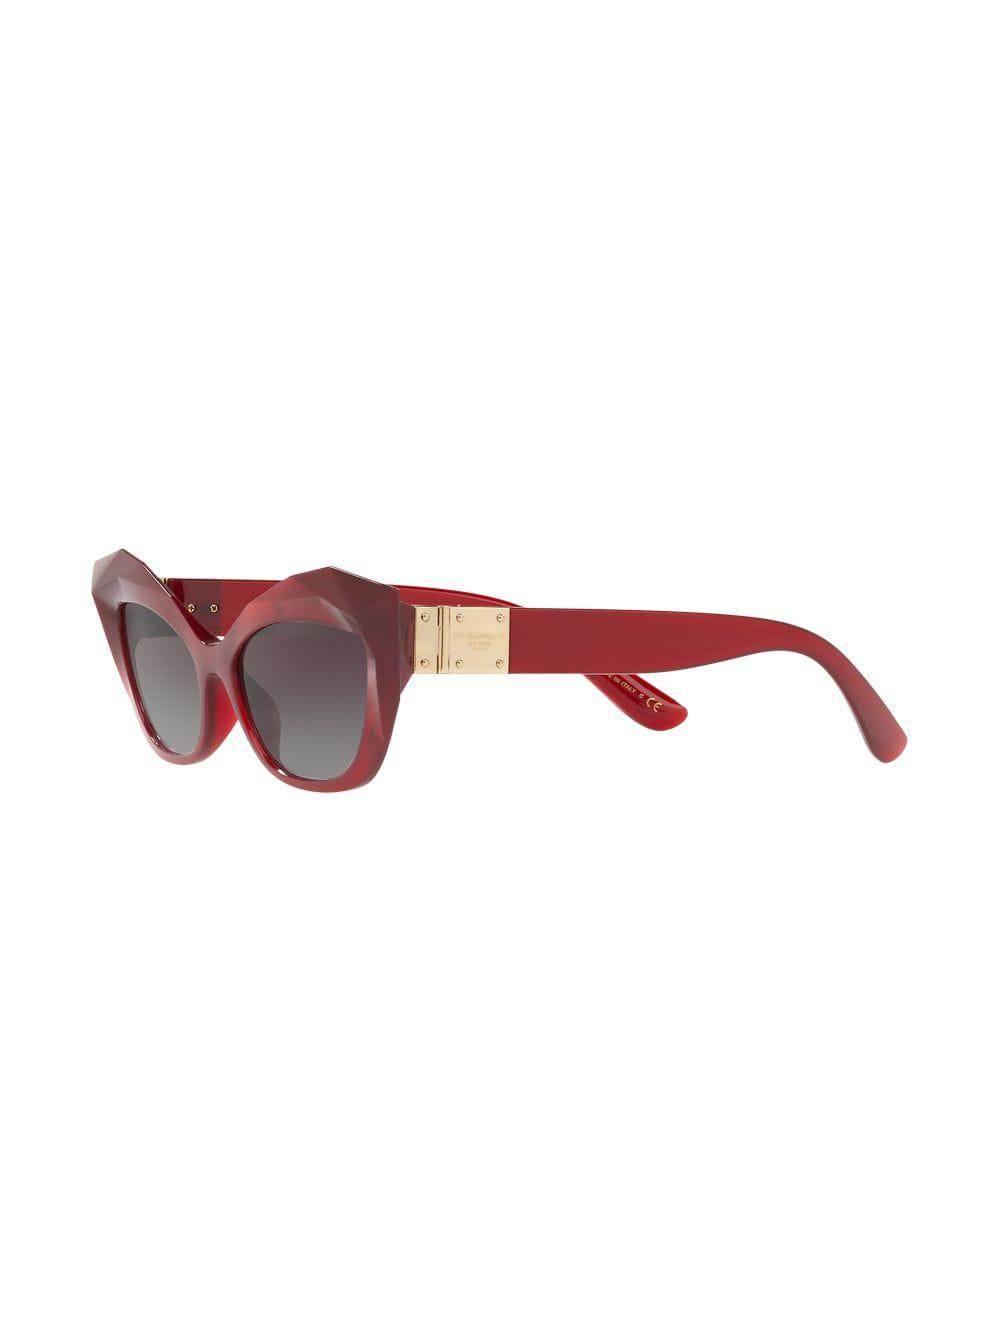 388339c25b2d Dolce   Gabbana Cat-eye Tinted Sunglasses in Red - Lyst